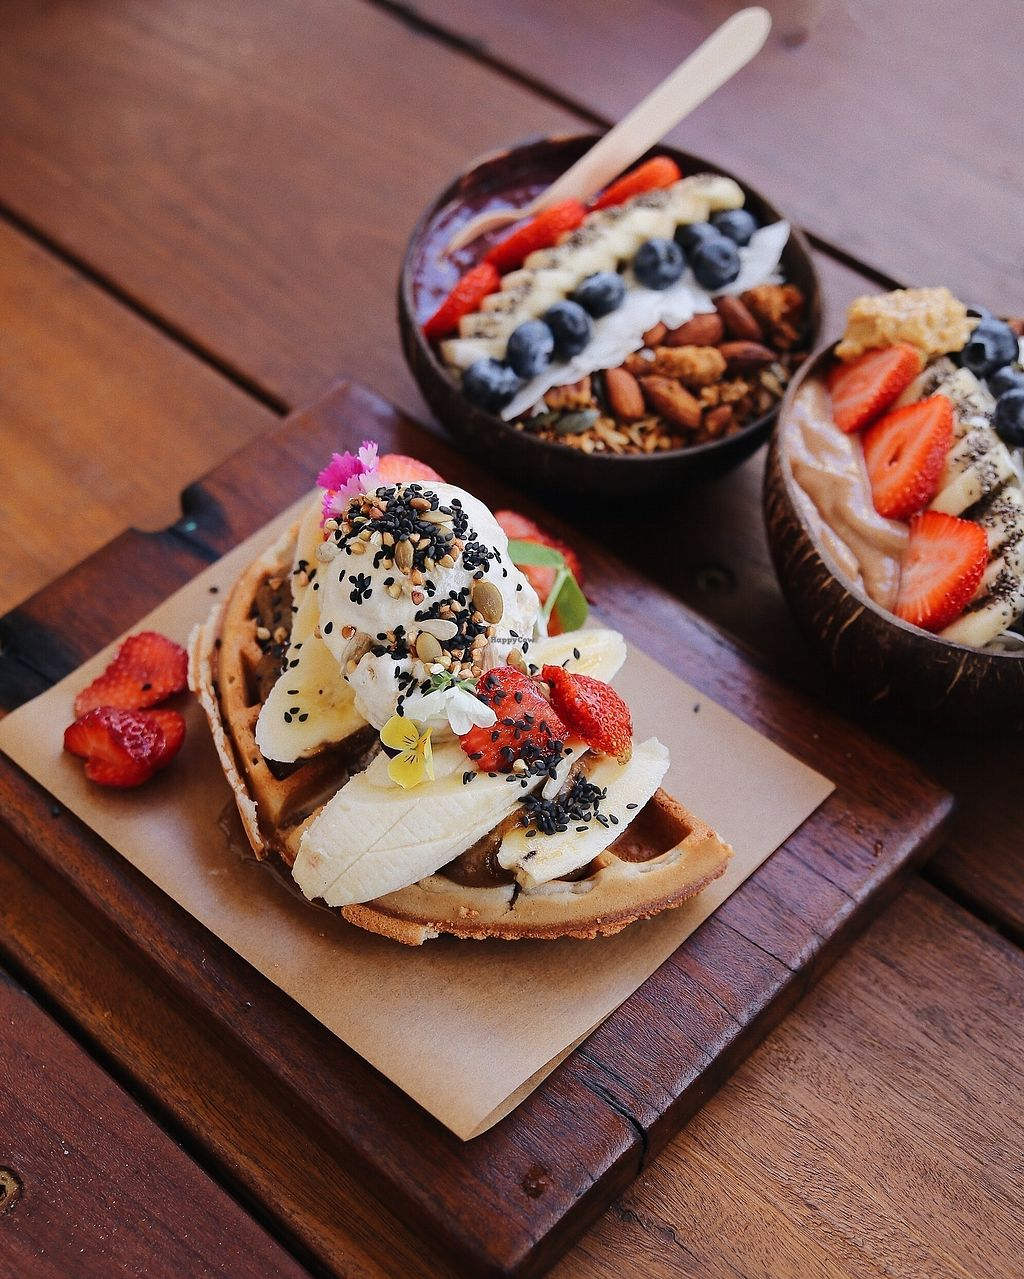 """Photo of Byron Bay General Store  by <a href=""""/members/profile/Byron_General_Store"""">Byron_General_Store</a> <br/>Vegan waffles and smoothie bowls. To die for <br/> March 1, 2018  - <a href='/contact/abuse/image/112858/365100'>Report</a>"""